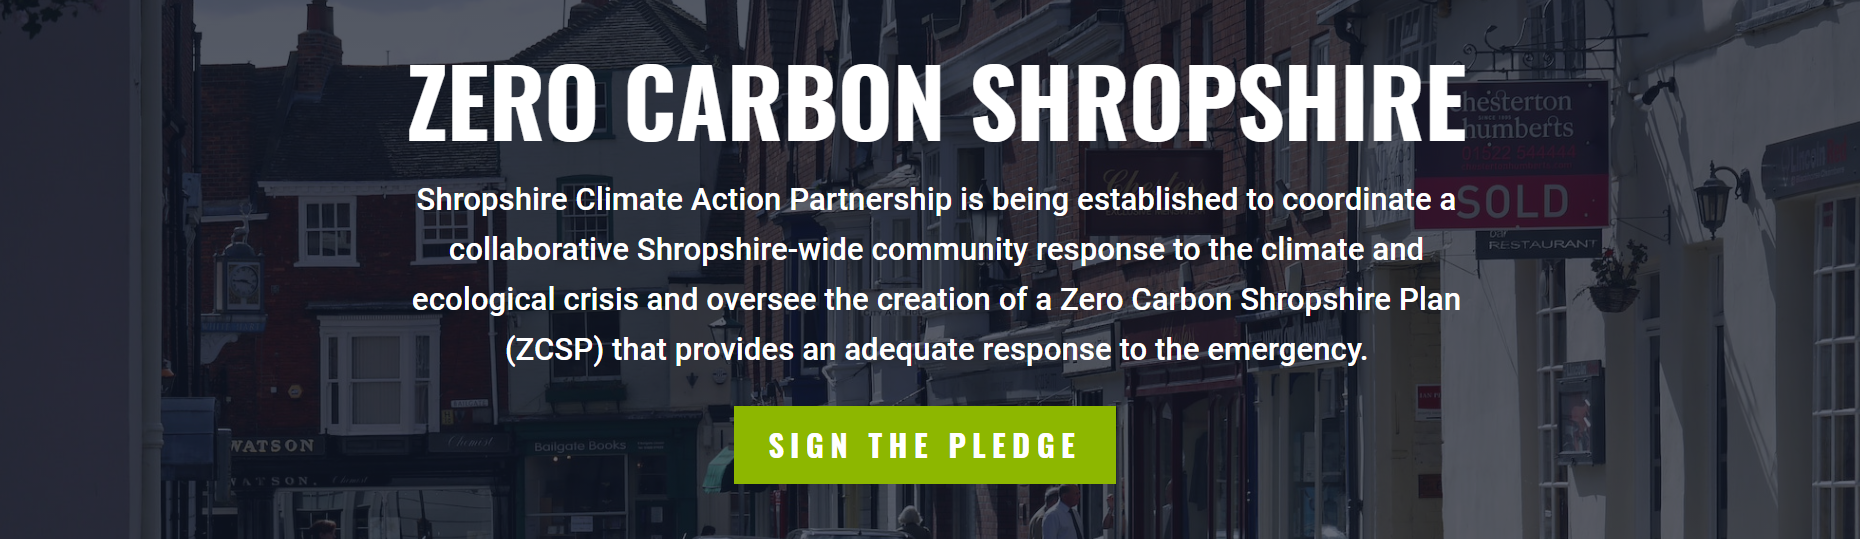 Sign the pledge button